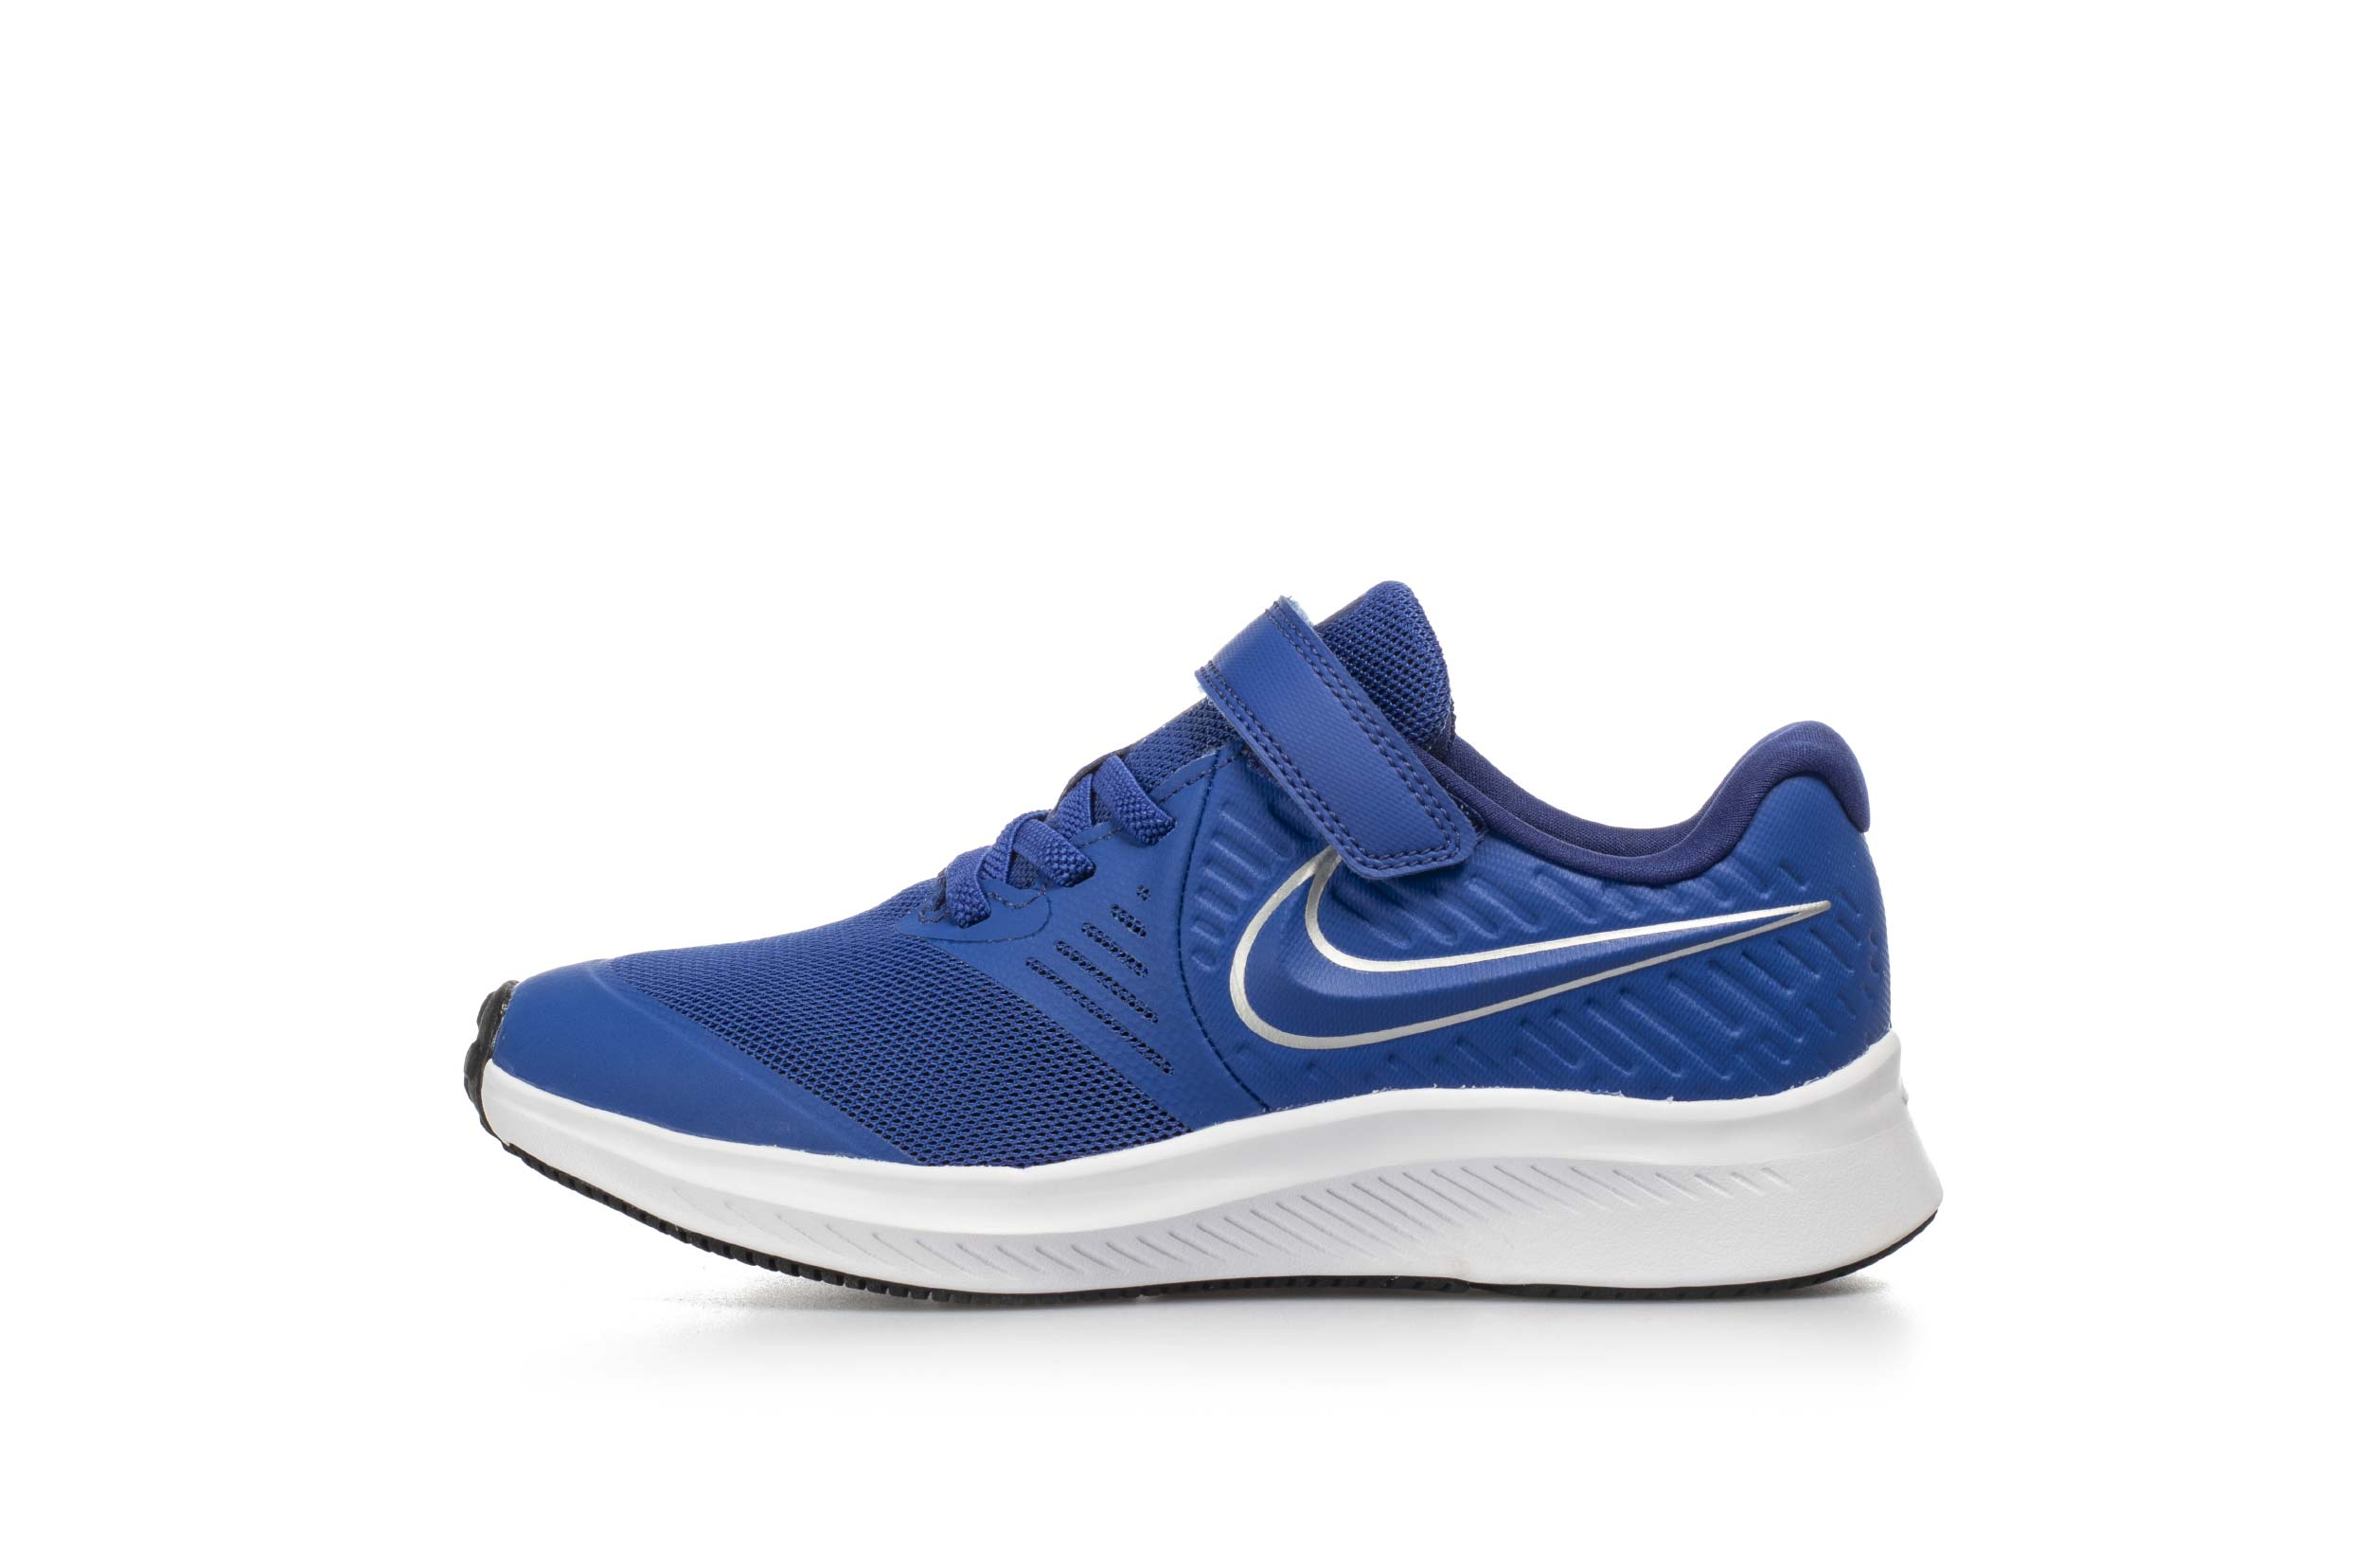 NIKE STAR RUNNER 2 PS AT1801-400 Ρουά